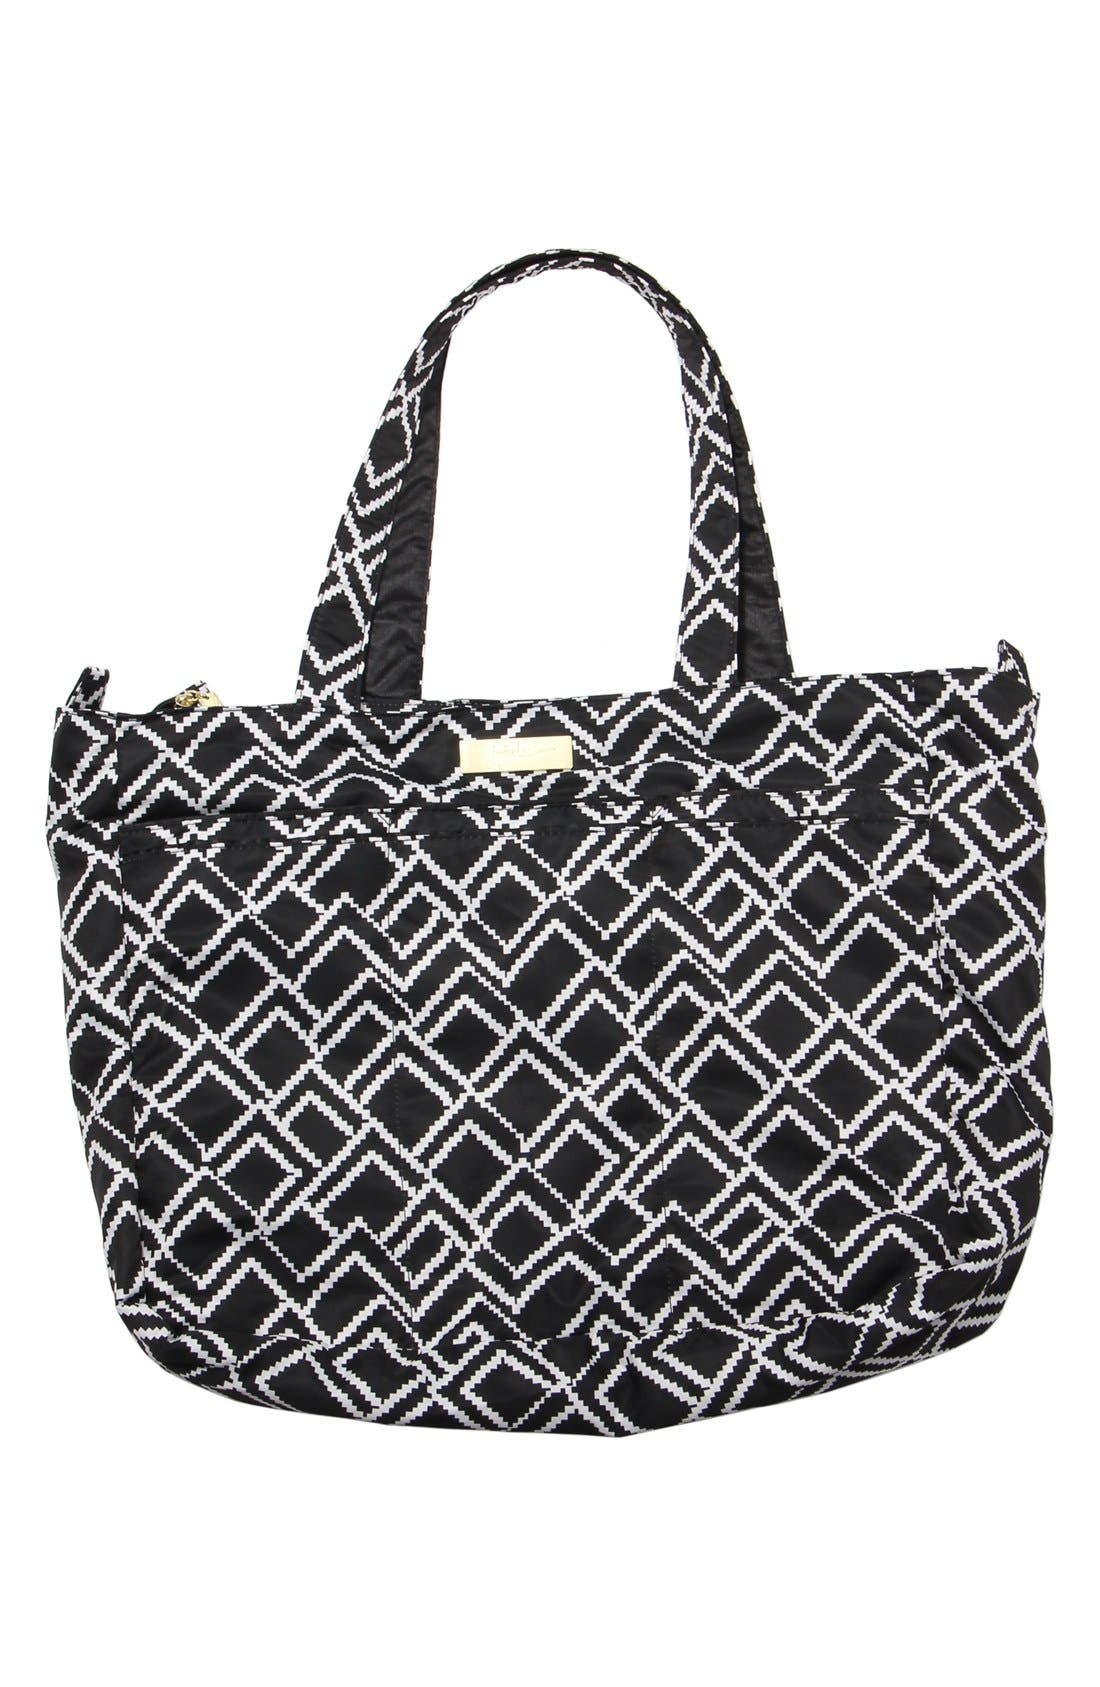 'Legacy Super Be - The First Lady' Diaper Bag,                         Main,                         color, The Empress